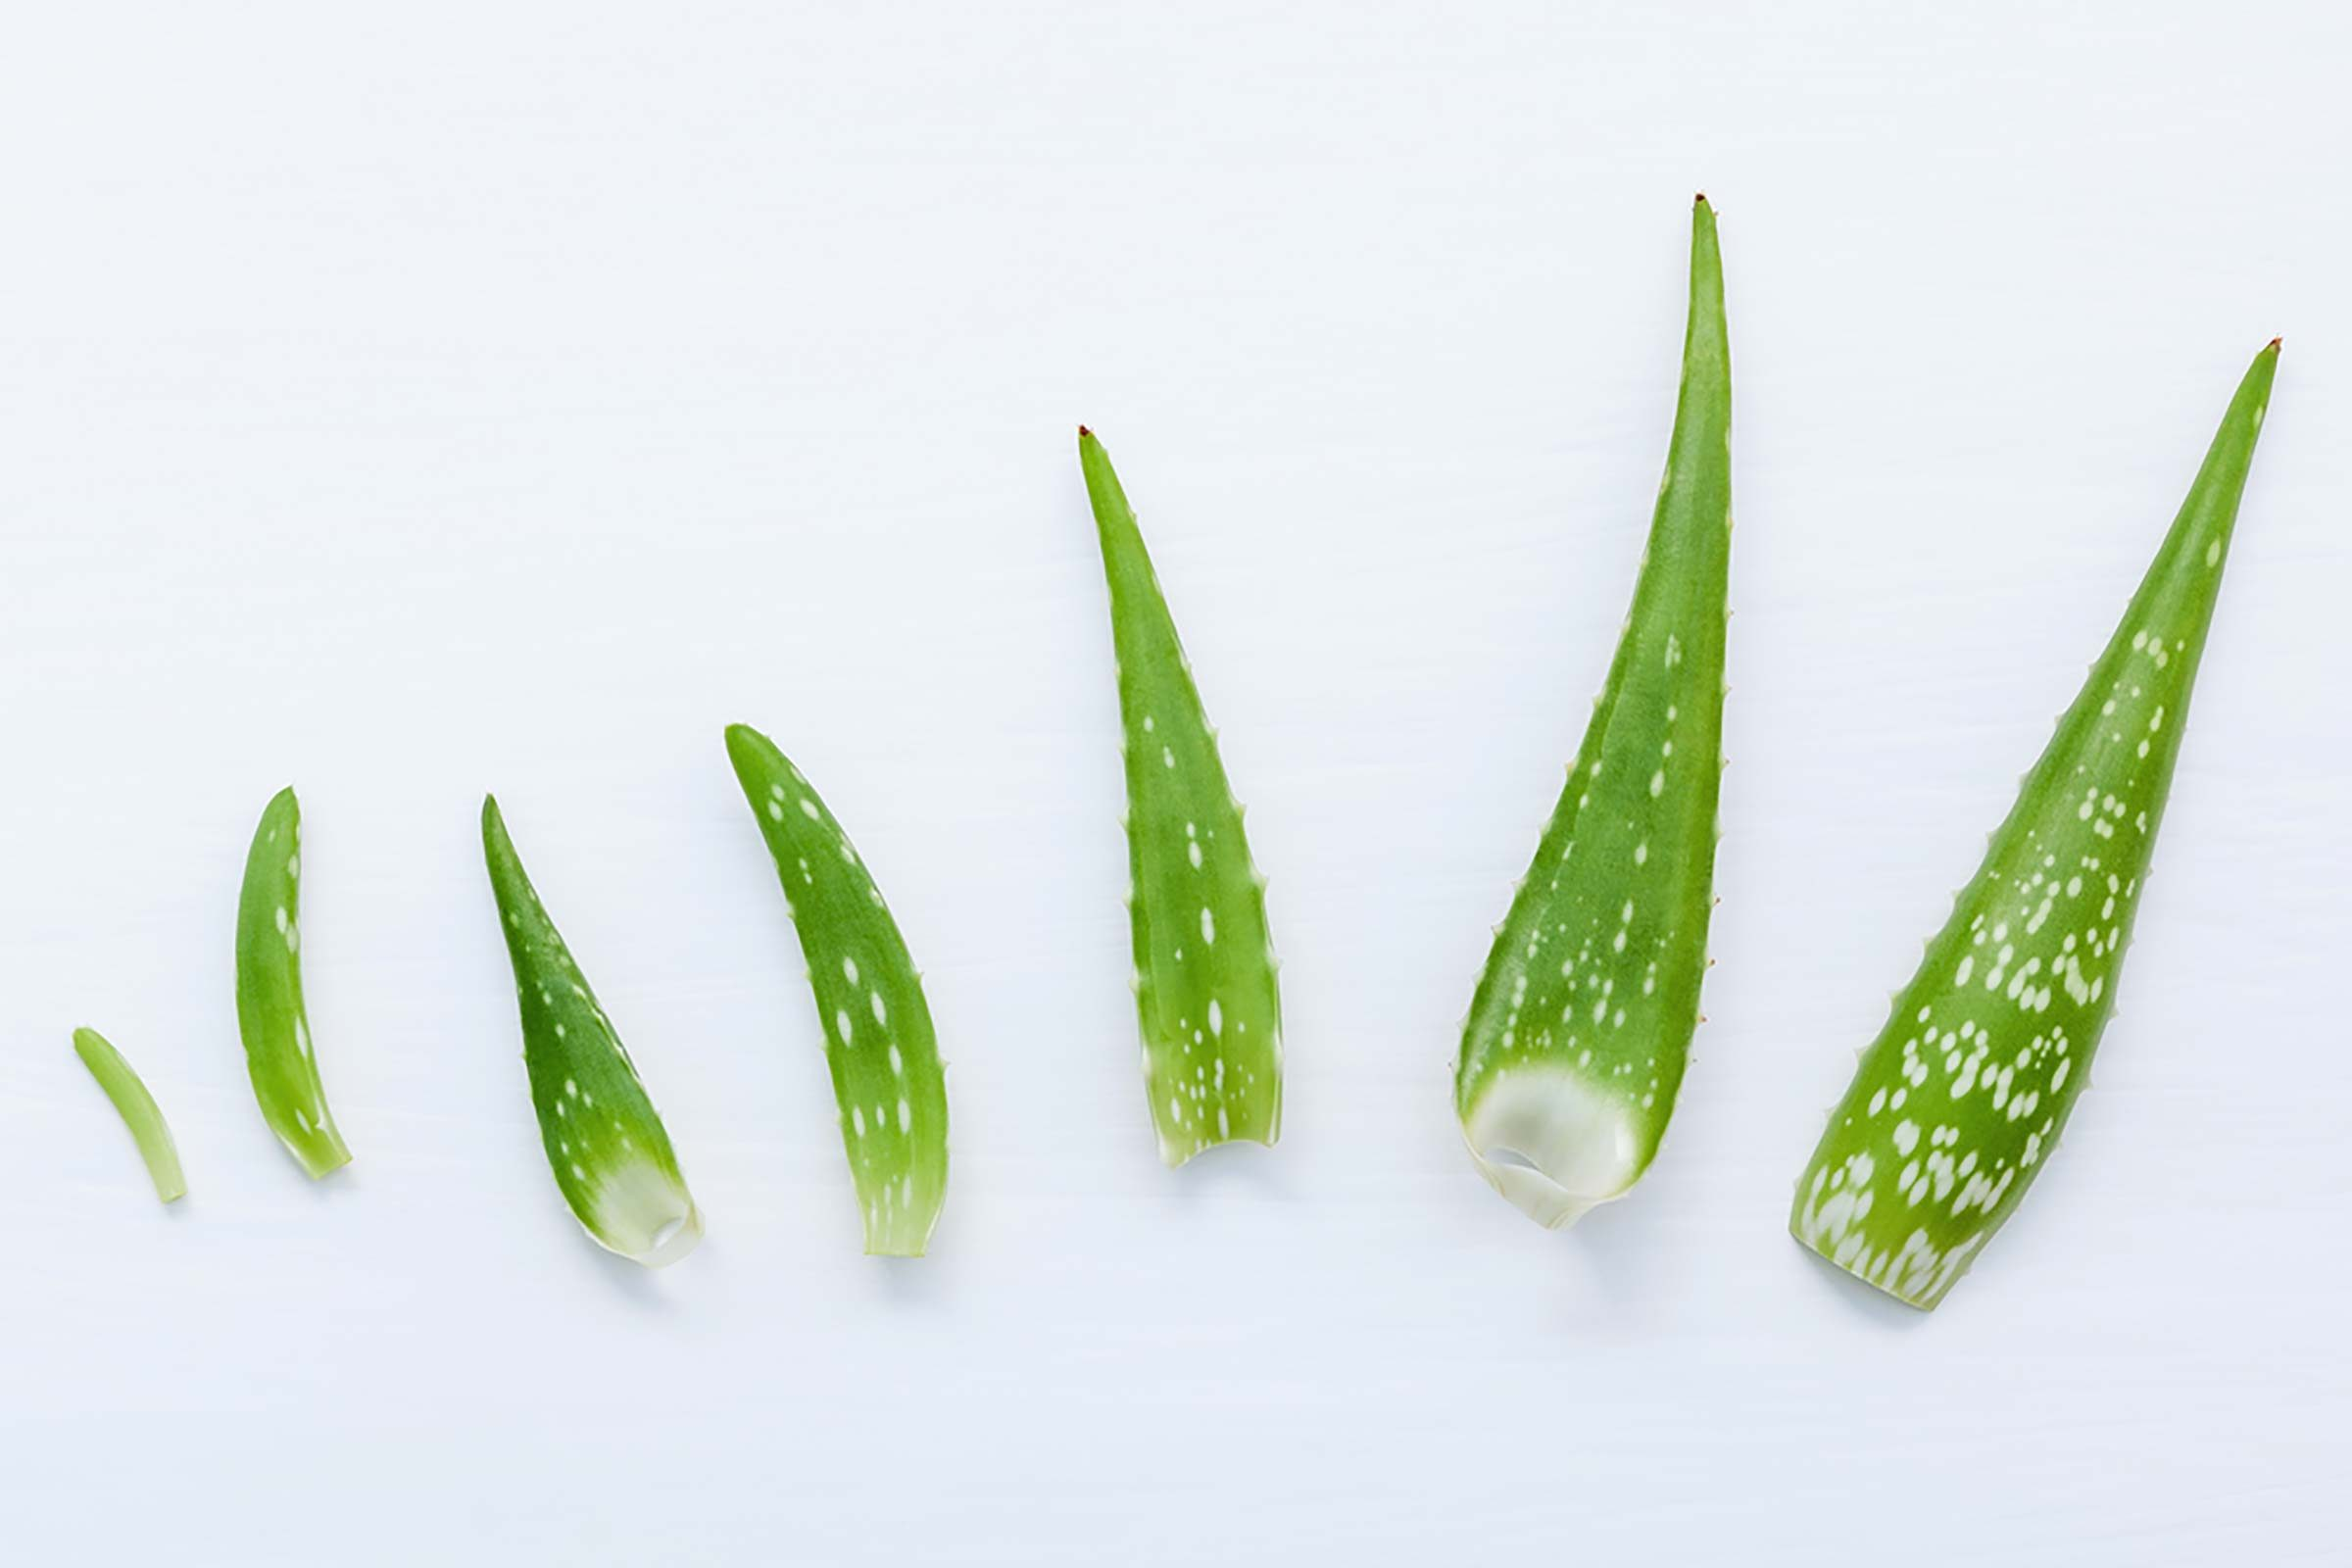 aloe vera fronds on a white background